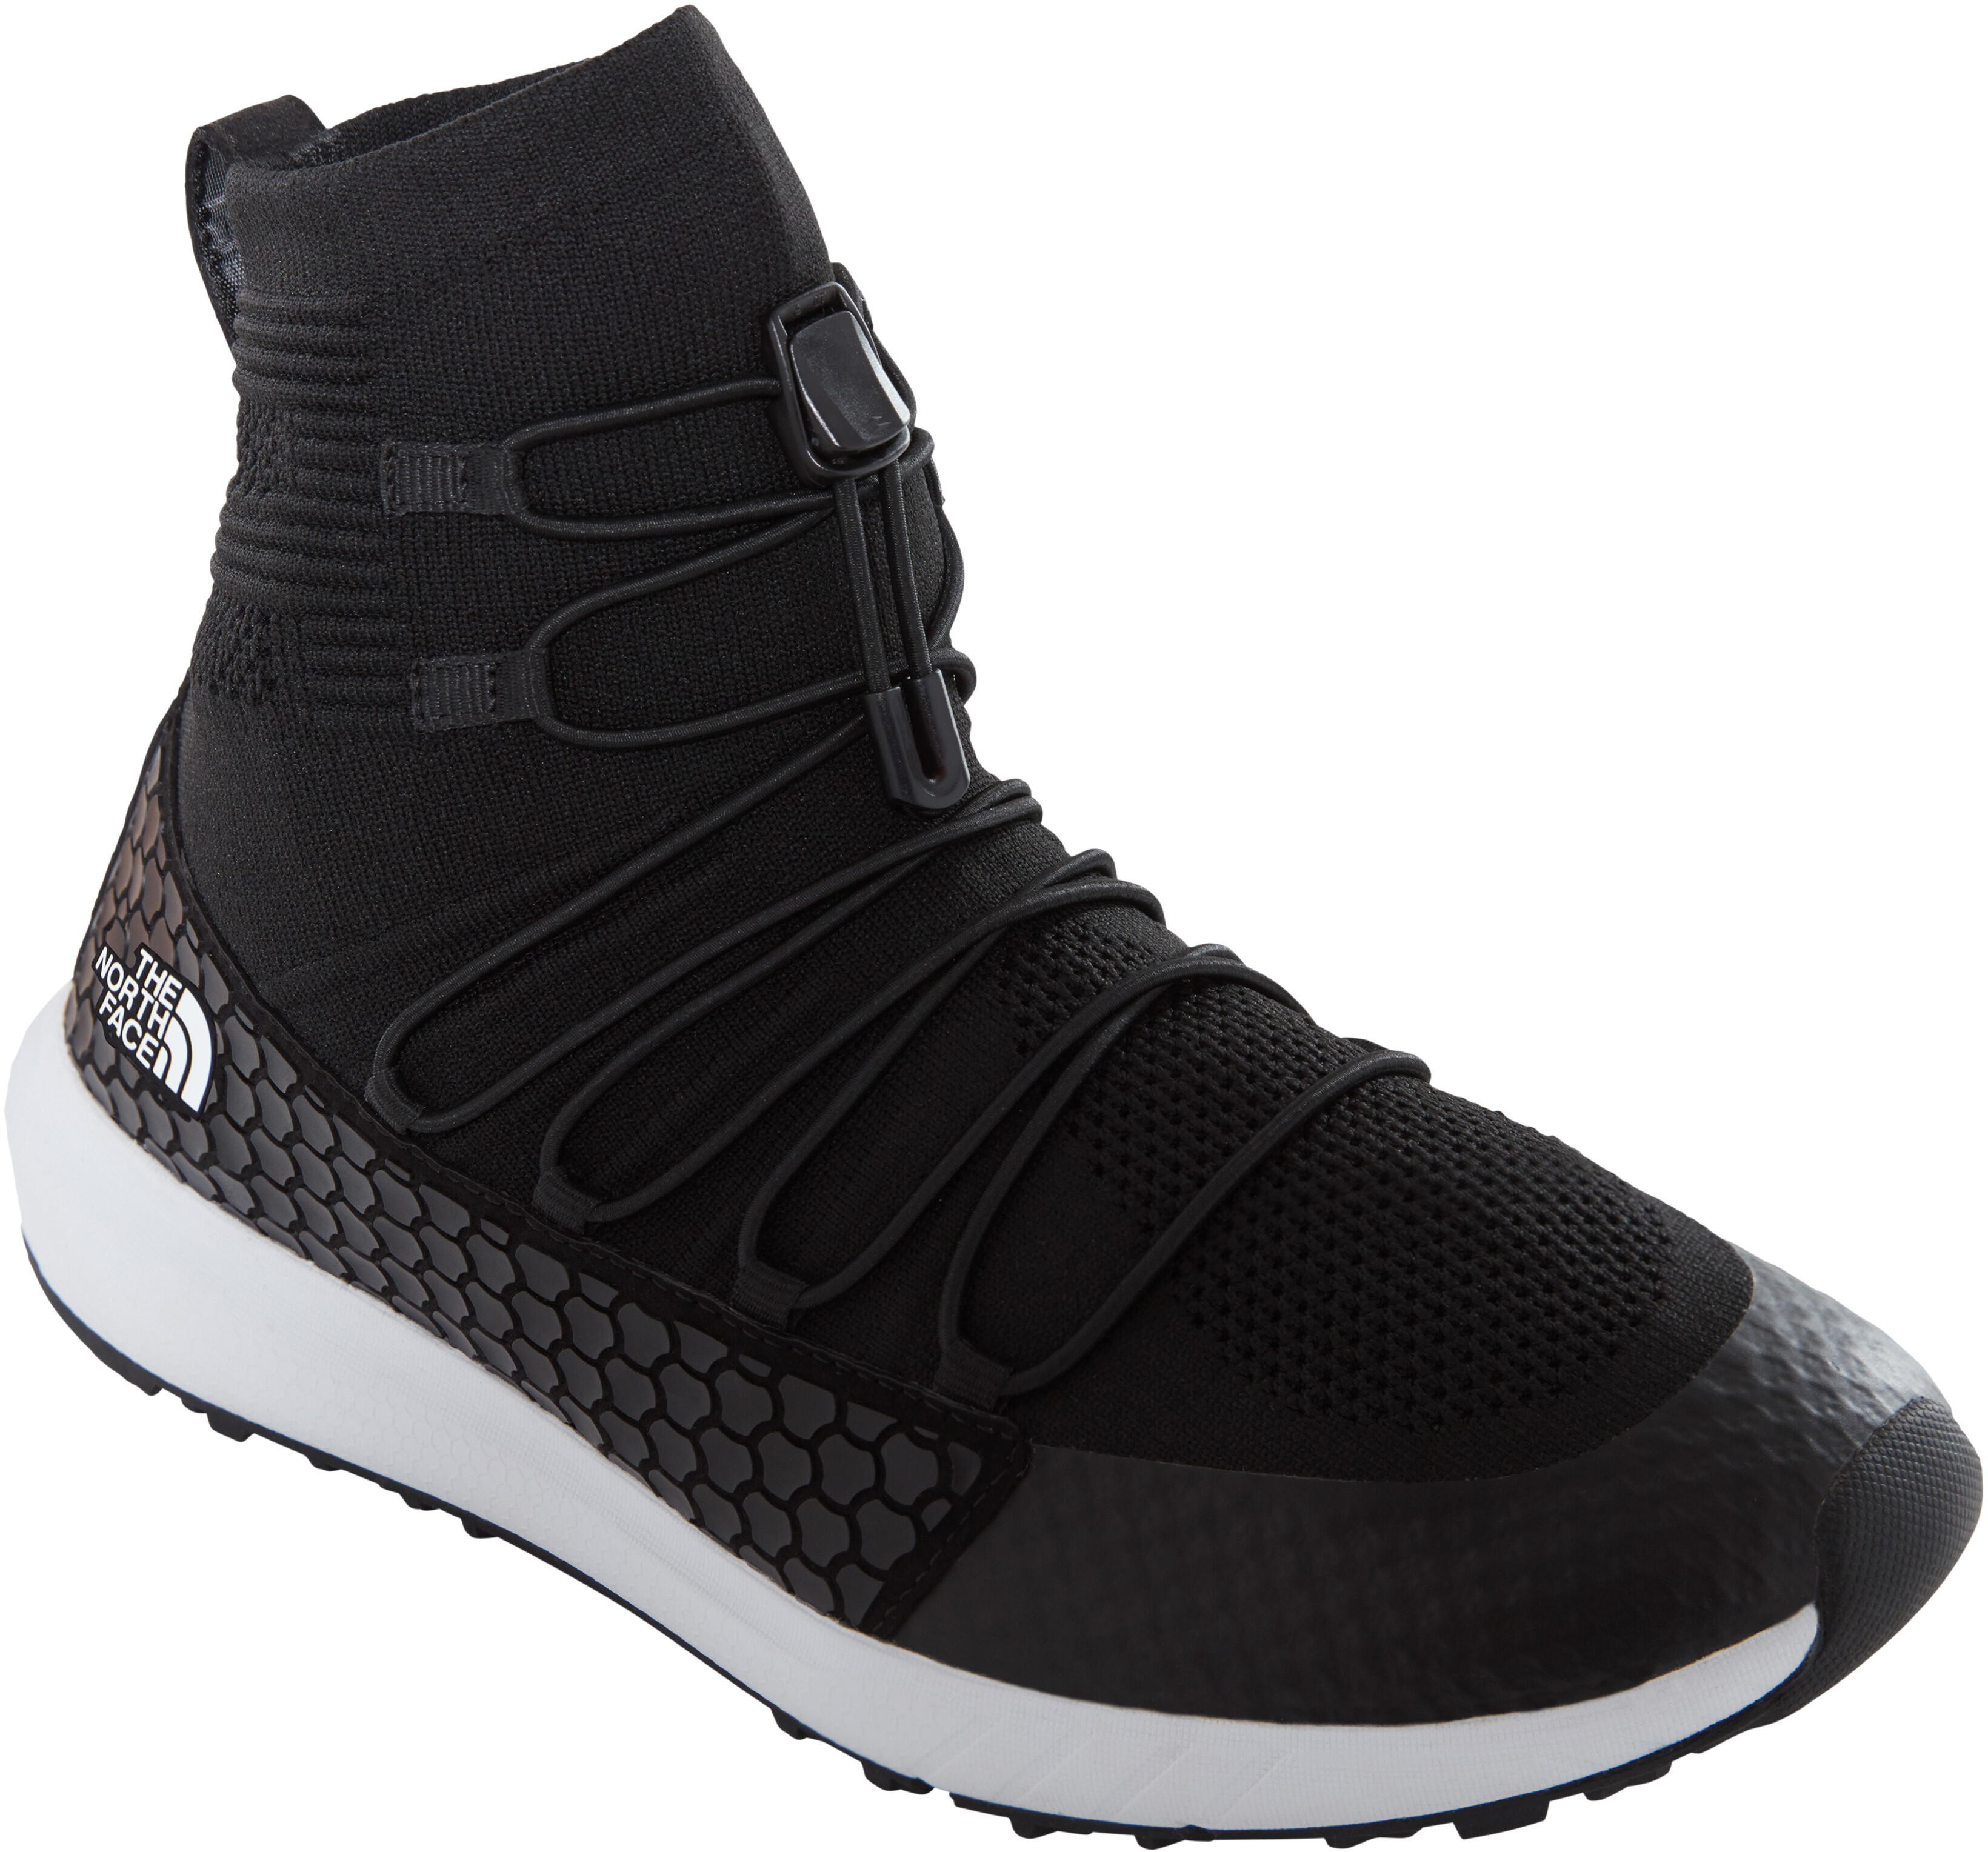 bea89061cc The North Face Touji Mid Lace Shoes Men tnf black/tnf white at ...